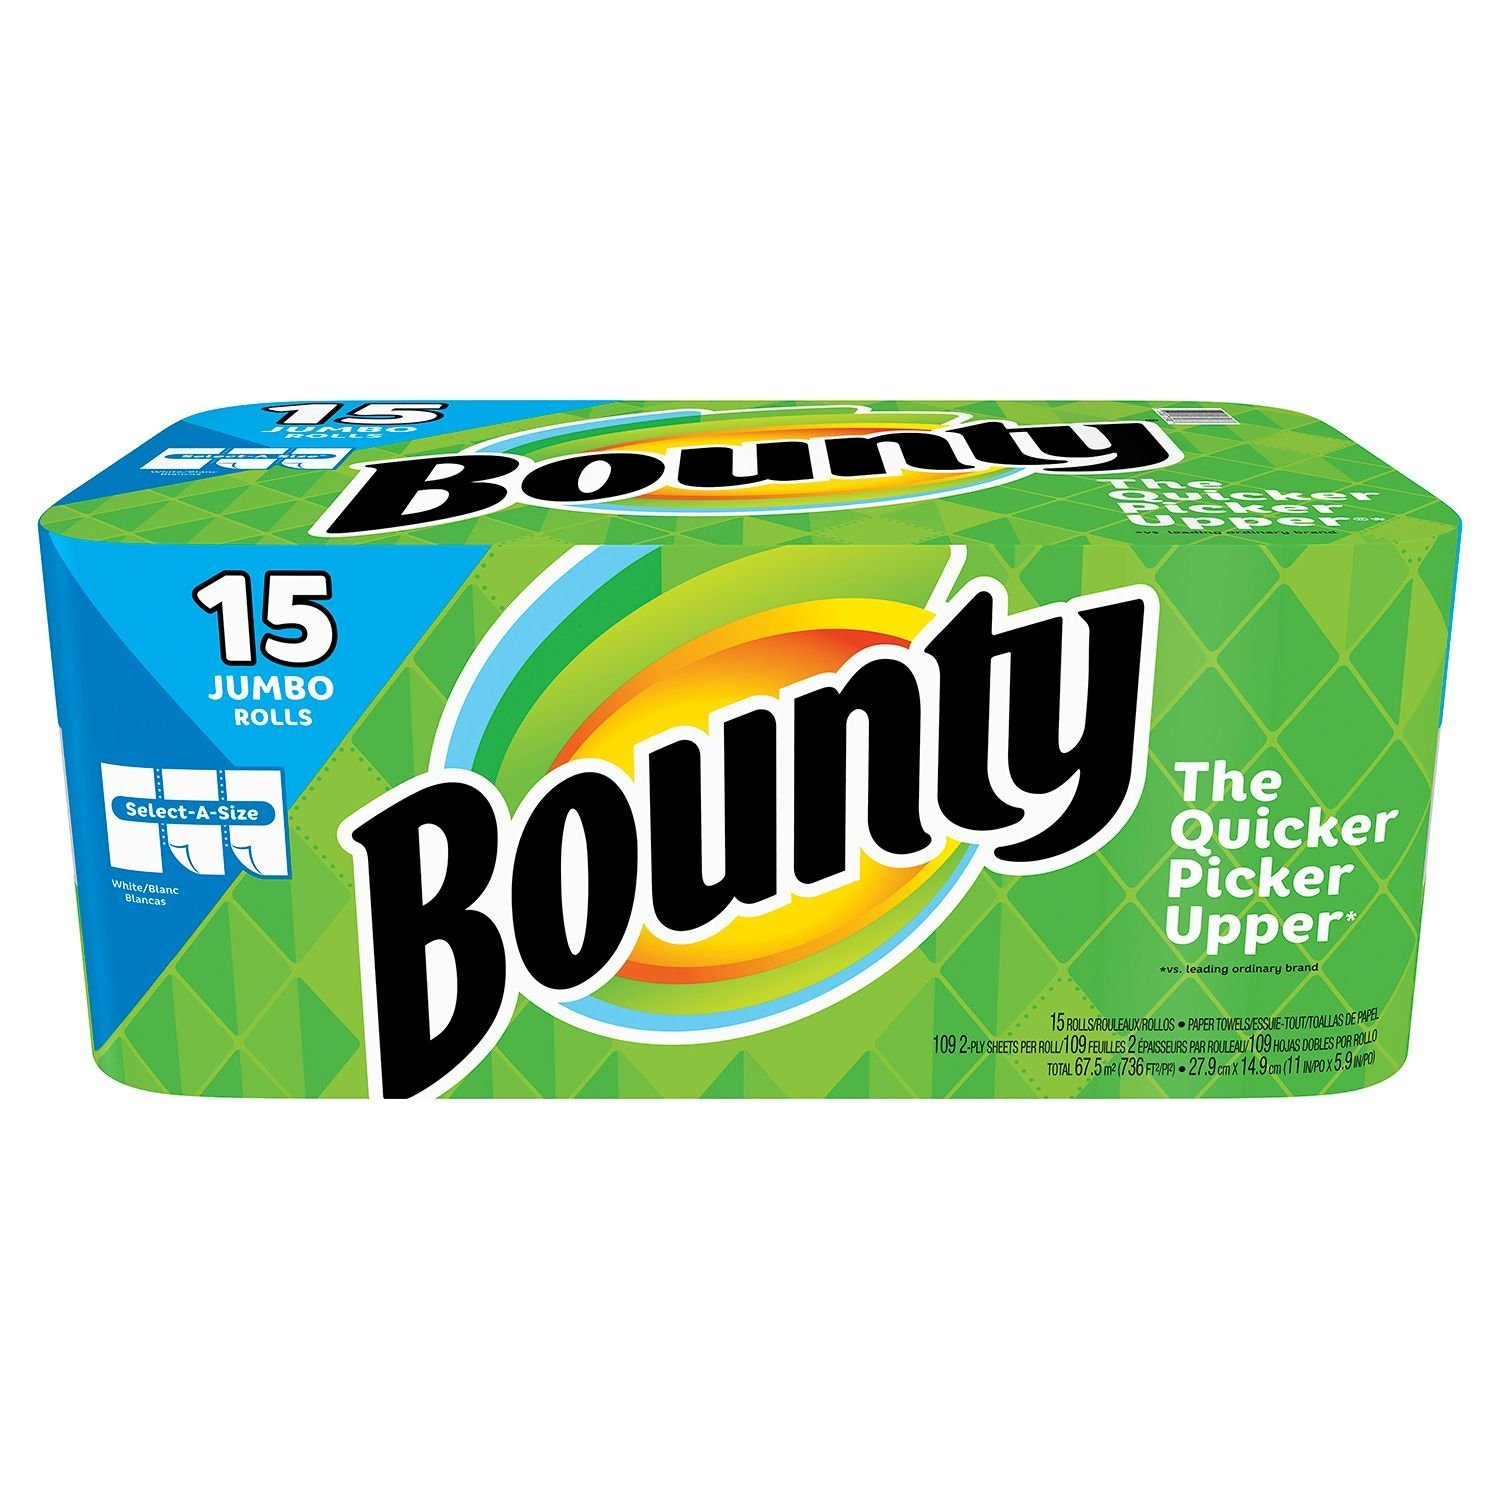 Bounty Select-a-Size Paper Towels, White, Huge Roll, 8 Count (2 pack(15 Jumbo Rolls))